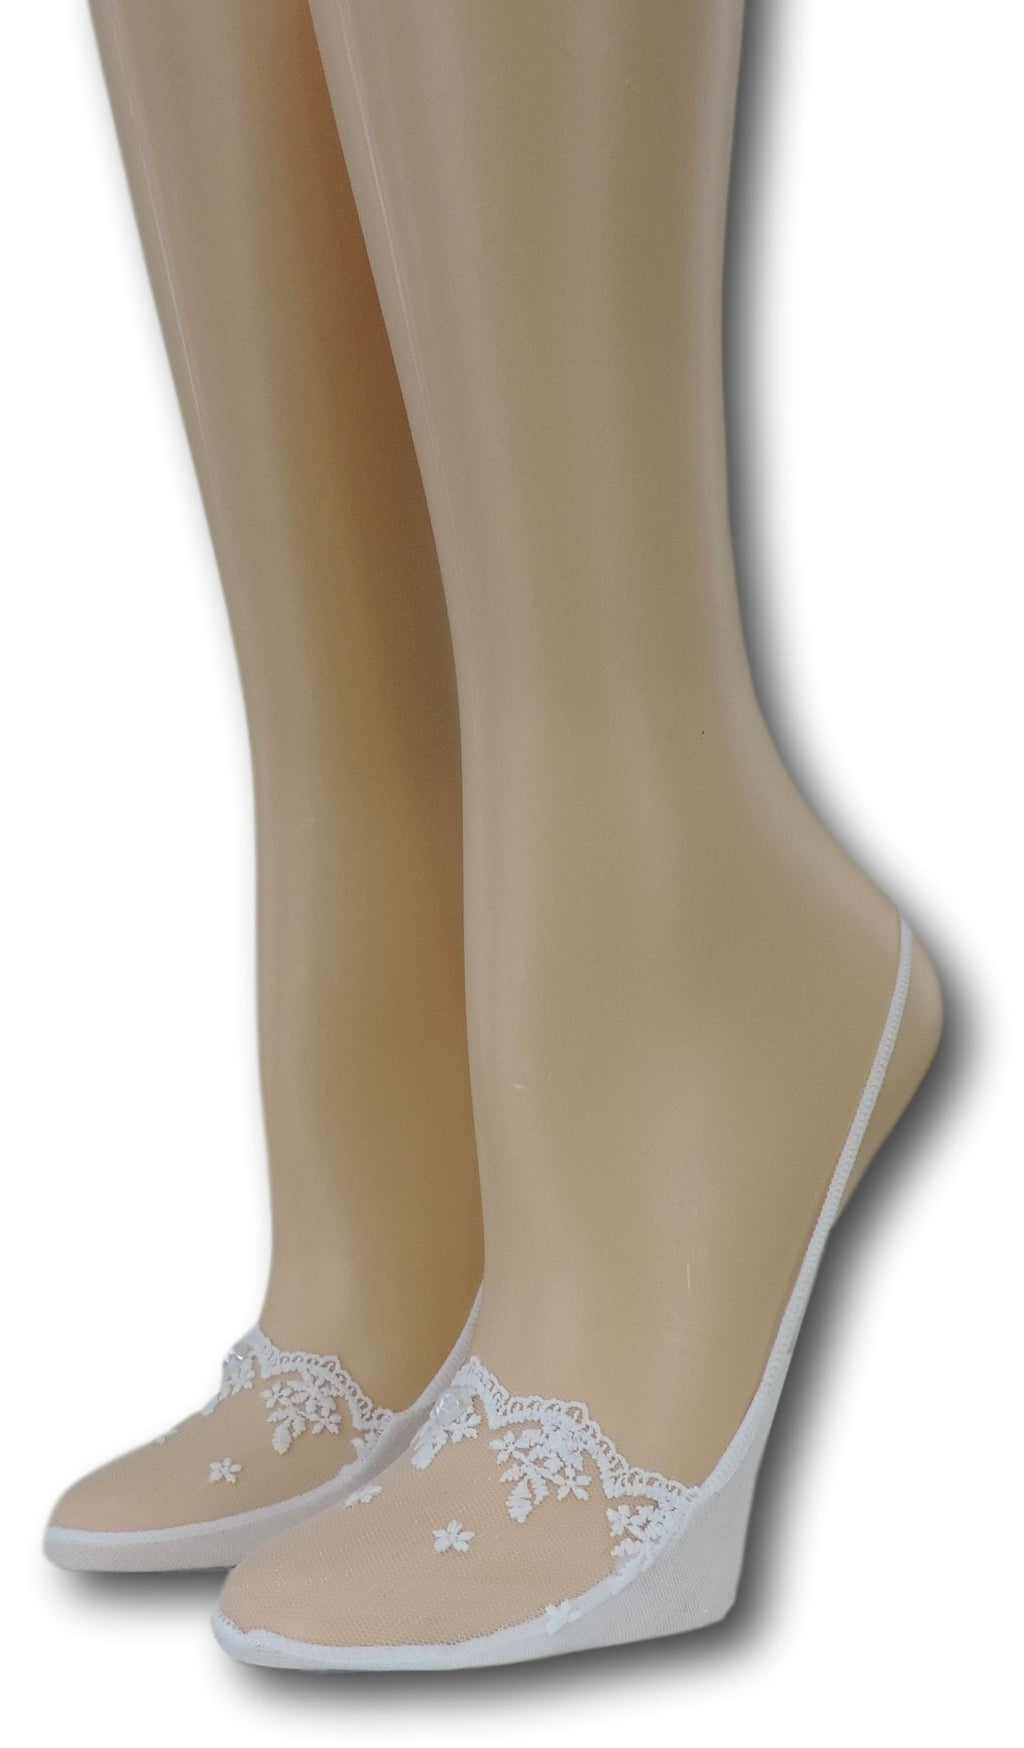 Slingback White Sheer Socks with beads